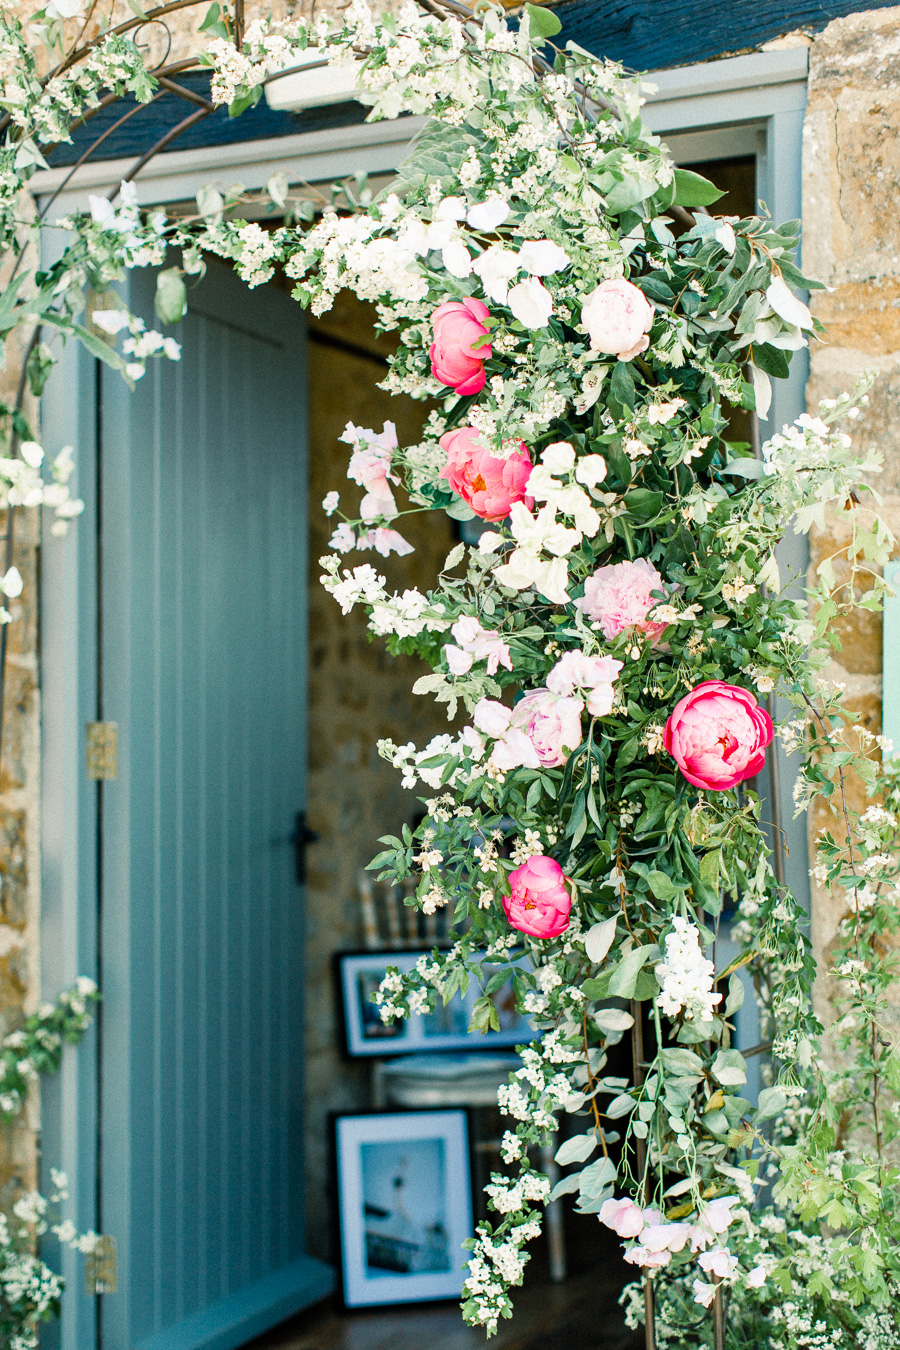 Jordans Courtyard rustic wedding styling ideas with images by Liz Baker Photography (17)